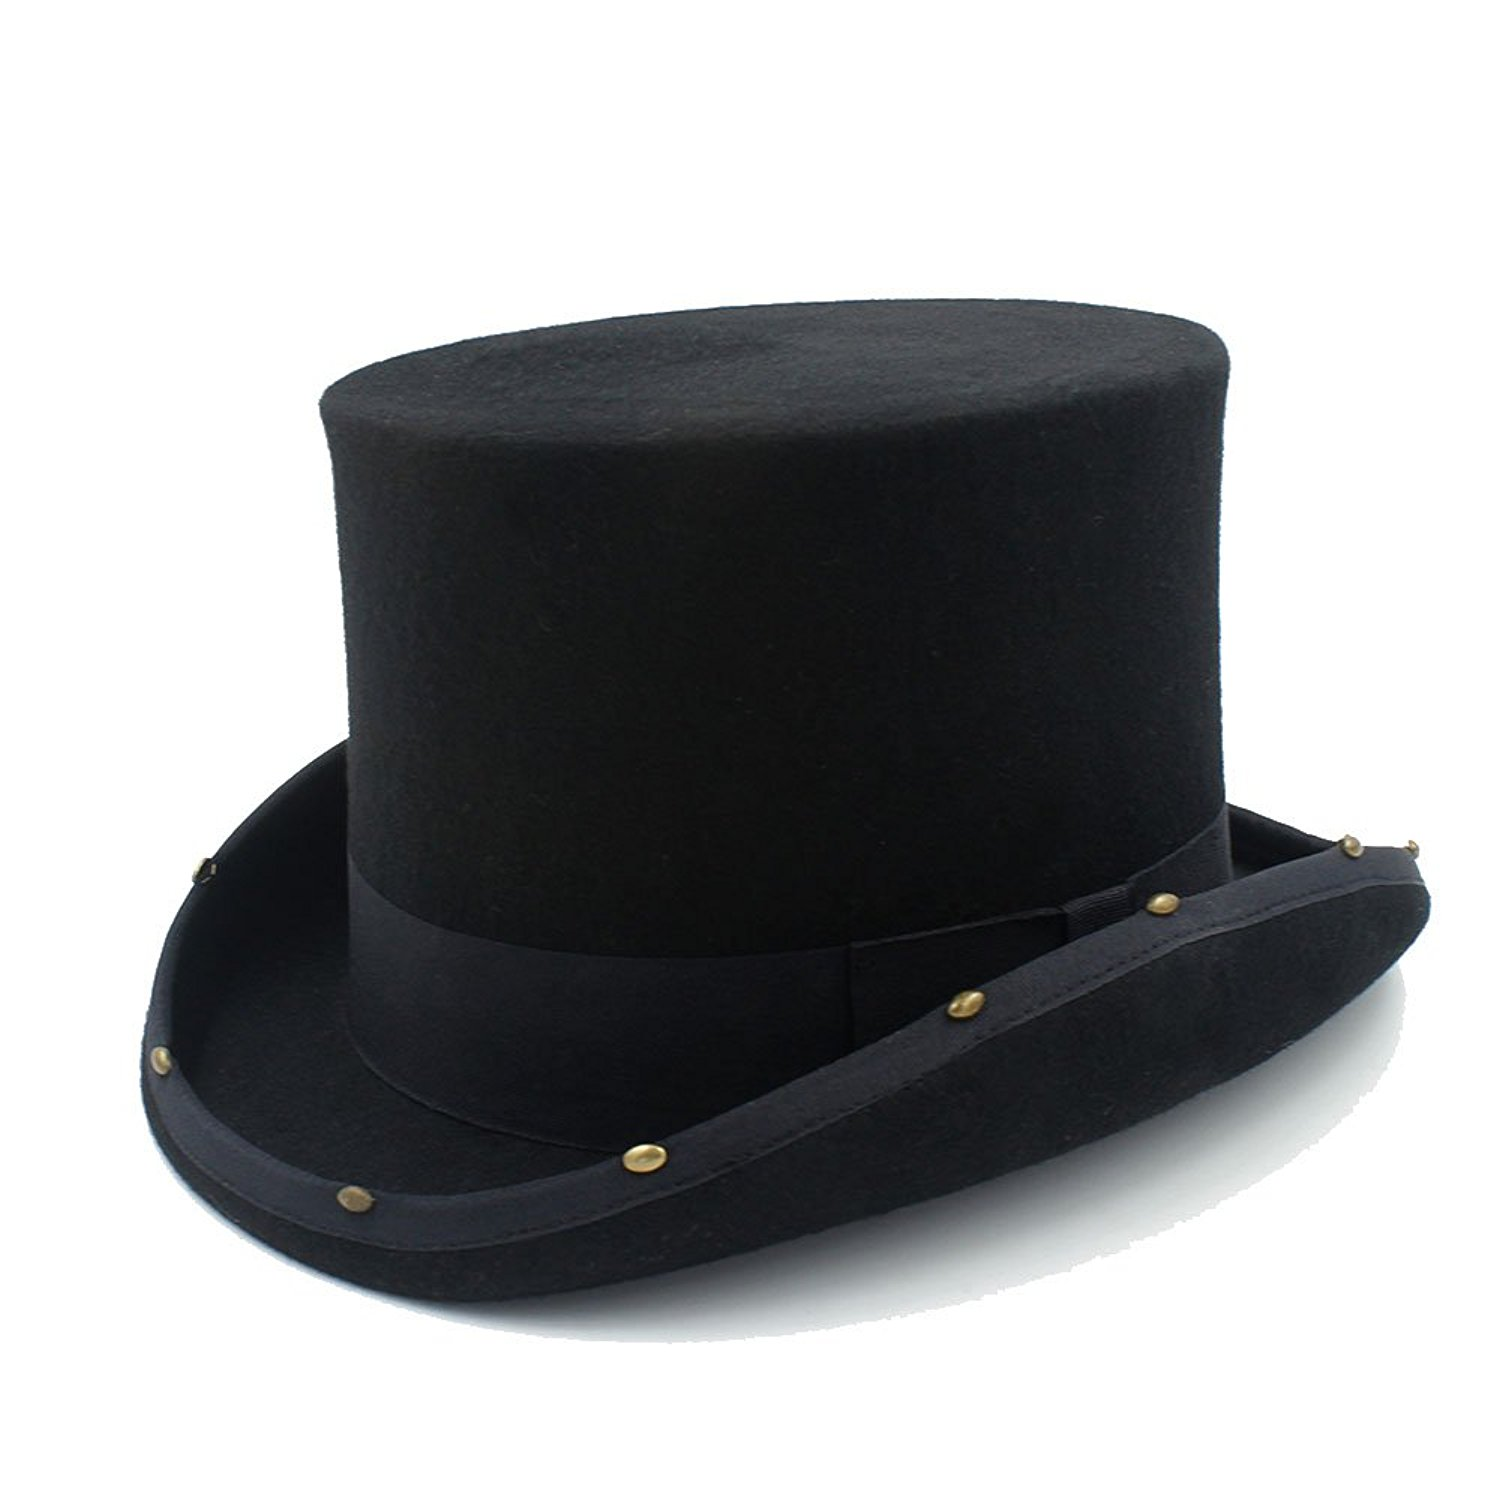 afeed3f2636a61 Get Quotations · CNBEAU 15CM Top Hat Steampunk Hat Handmade Rivet MAD  Hatter Vintage Women Men Traditional Wool Fedoras